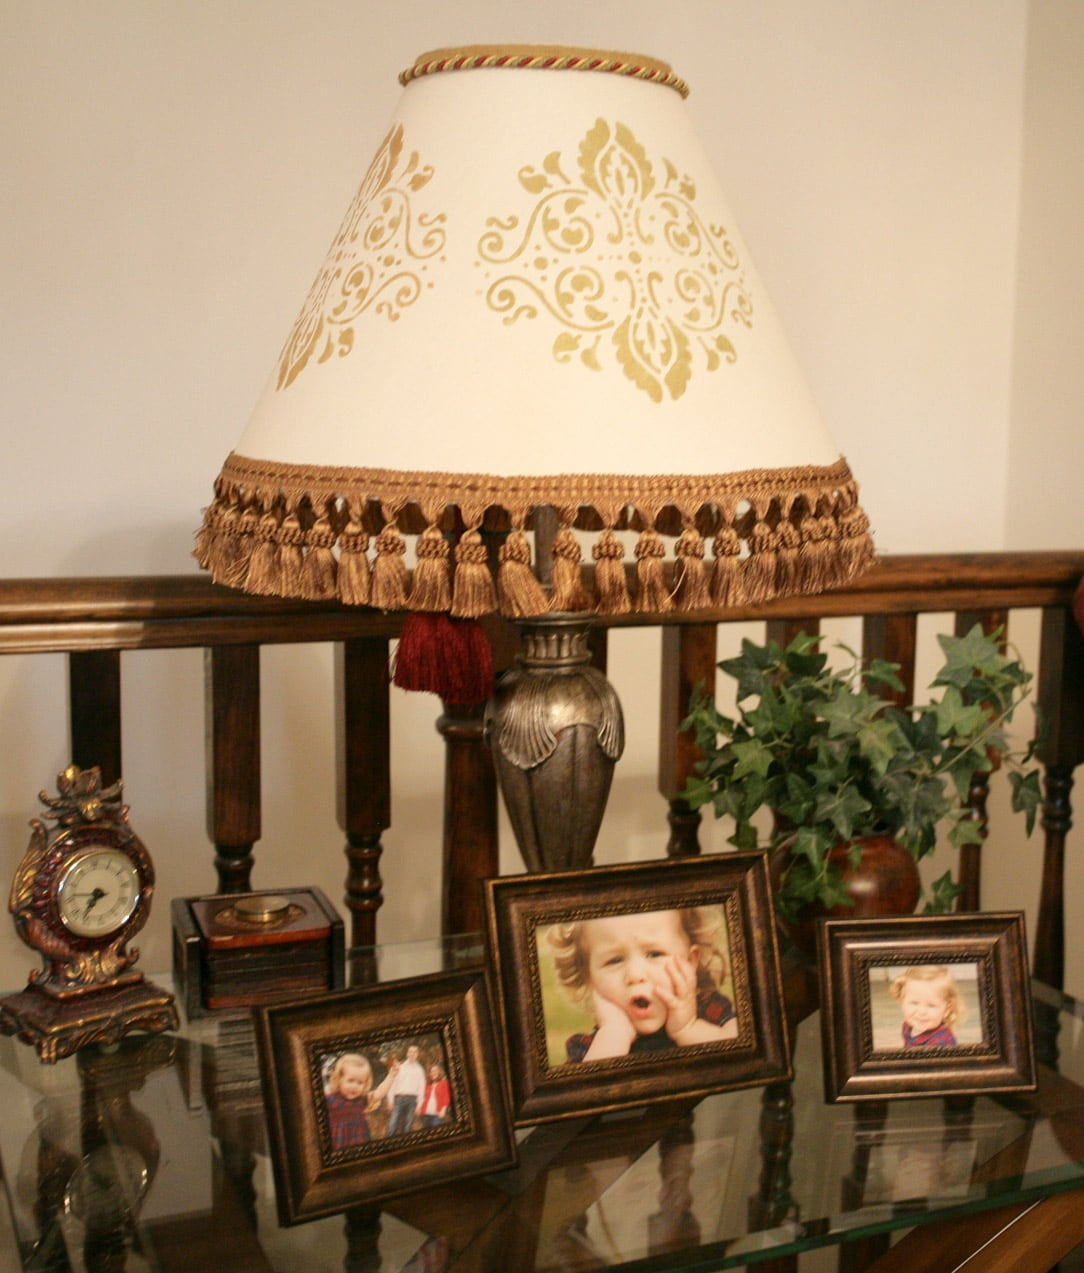 Transforming an every day lamp shade how to nest for less photos on my end table were taken by jlynn photography in st louis shes amazing check out her website at jlynnphotoart geotapseo Image collections